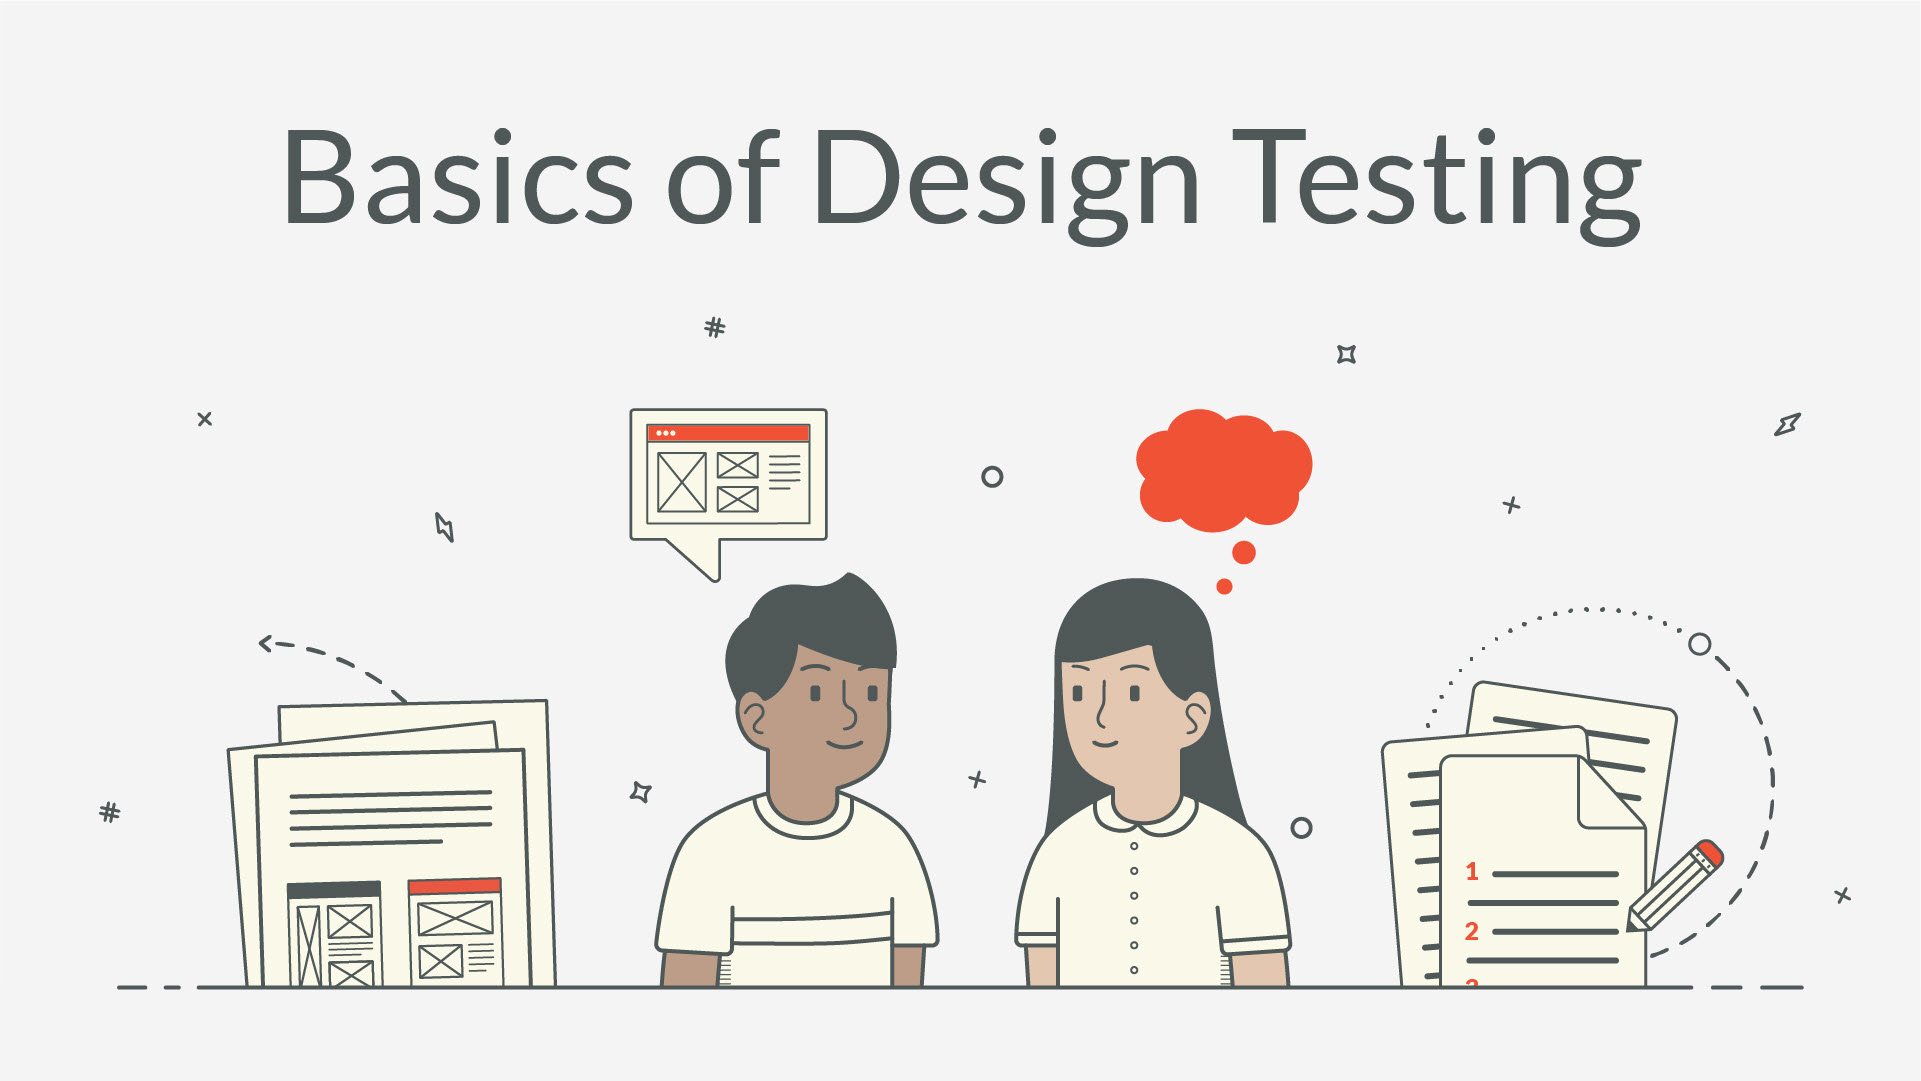 Basics of Design Testing (Edition Q2/2018)